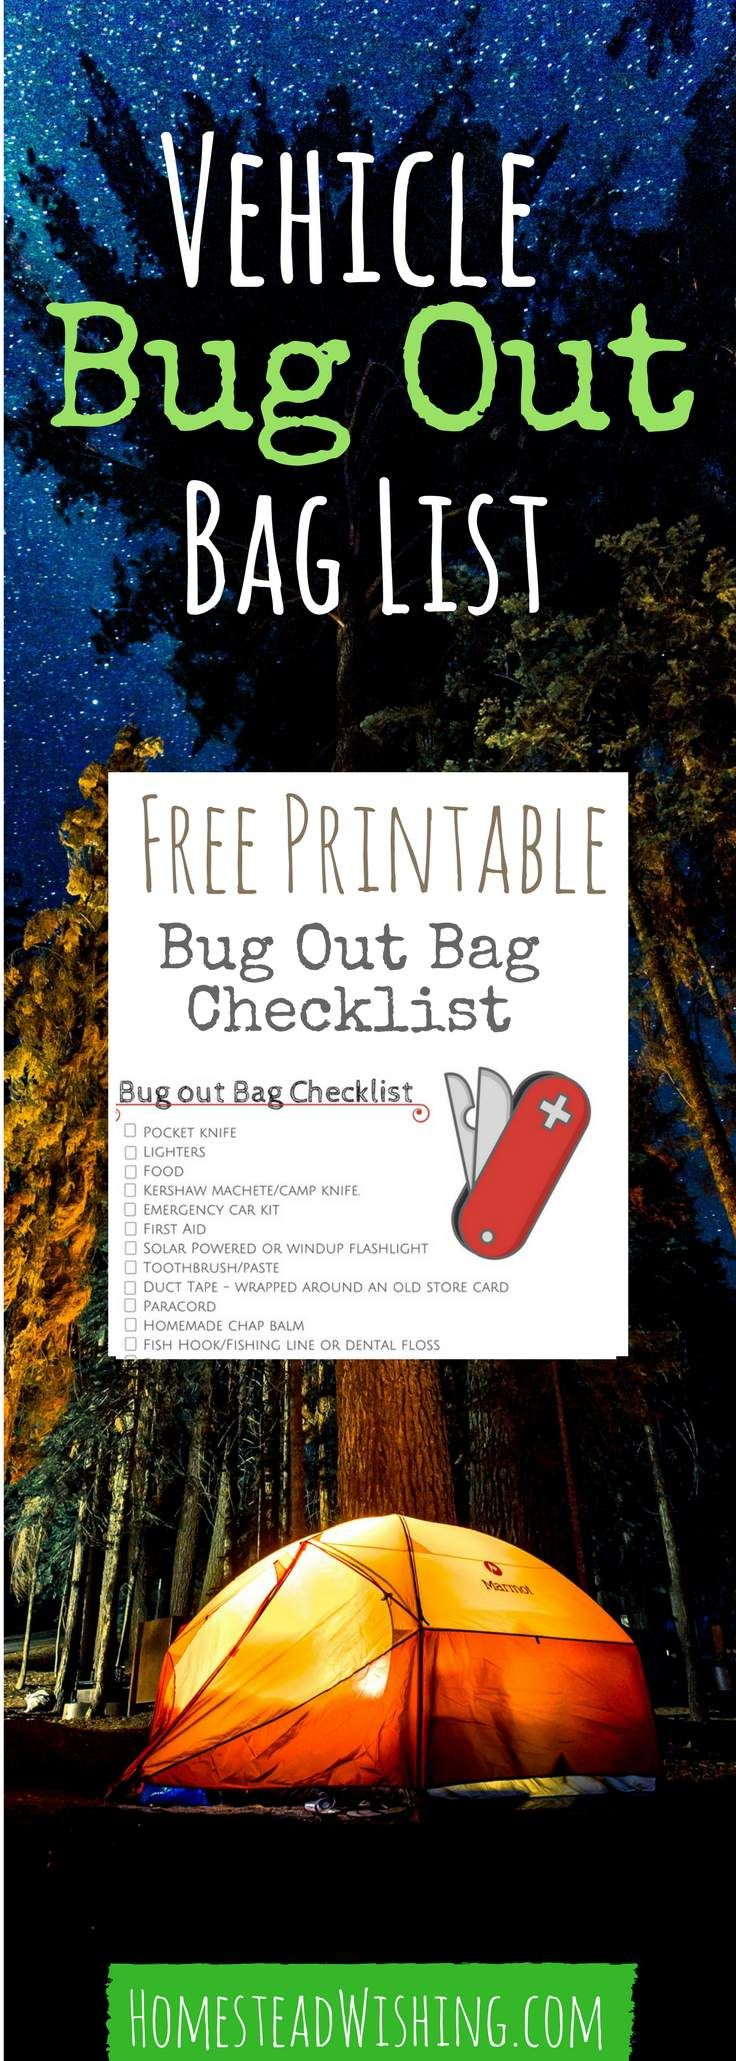 Vehicle bug out bag list. Free printable bug out bag checklist! This is a great list to help you be prepared in case of an emergency. Bug-out-bag-checklist, free-printable, survival-checklist   Homestead Wishing, Author Kristi Wheeler